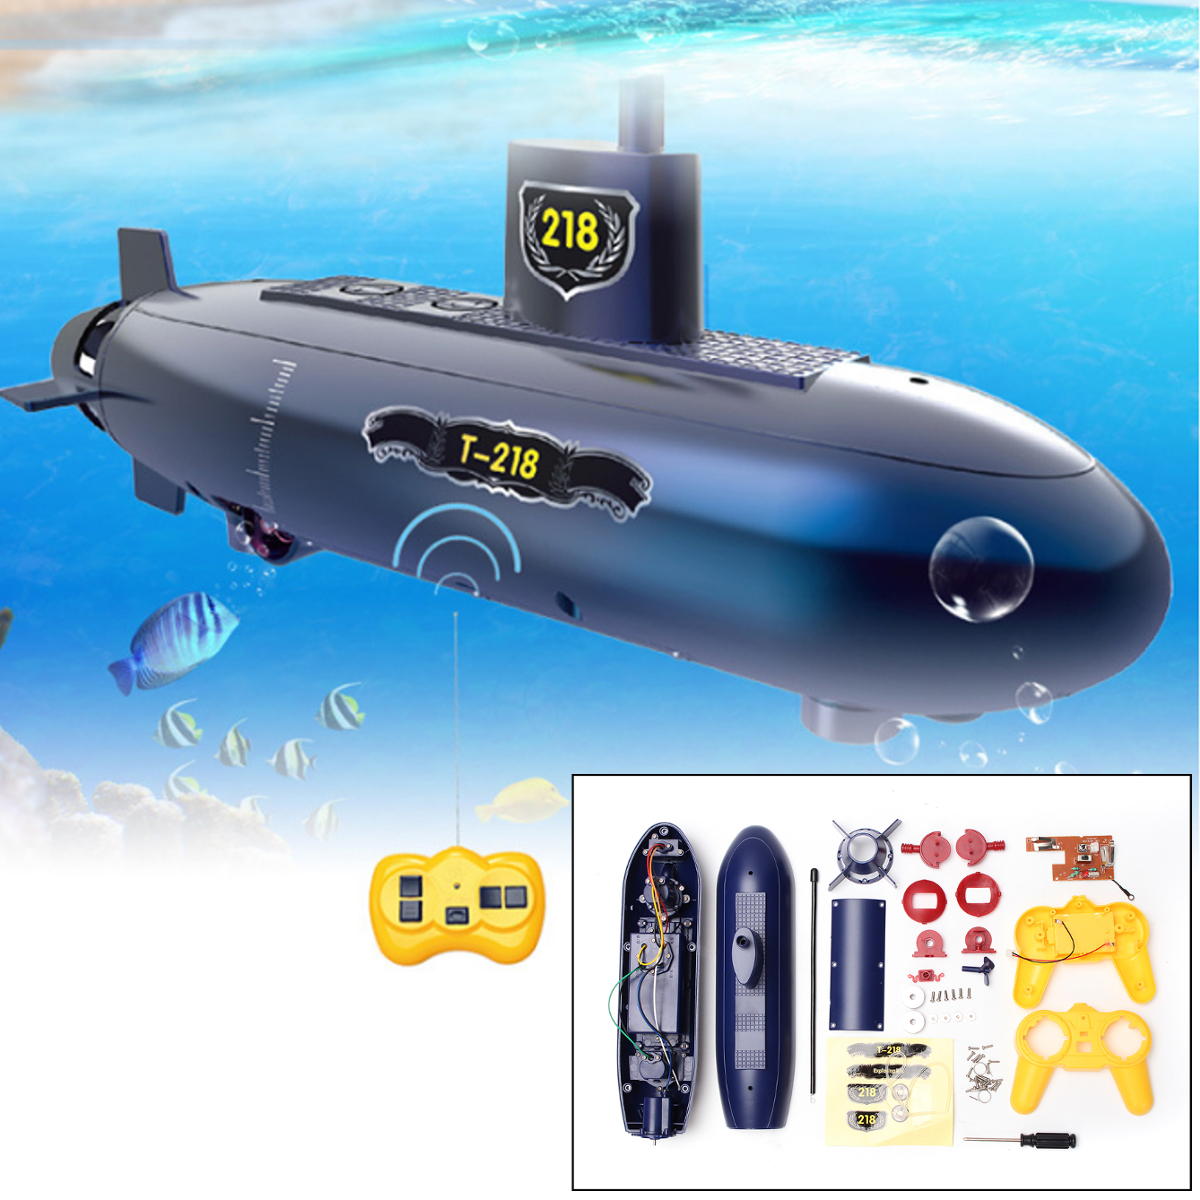 Mini RC Submarine Remote Control Under Water Boat Ship 6 Channels DIY Education Children Kids Toy Gift by